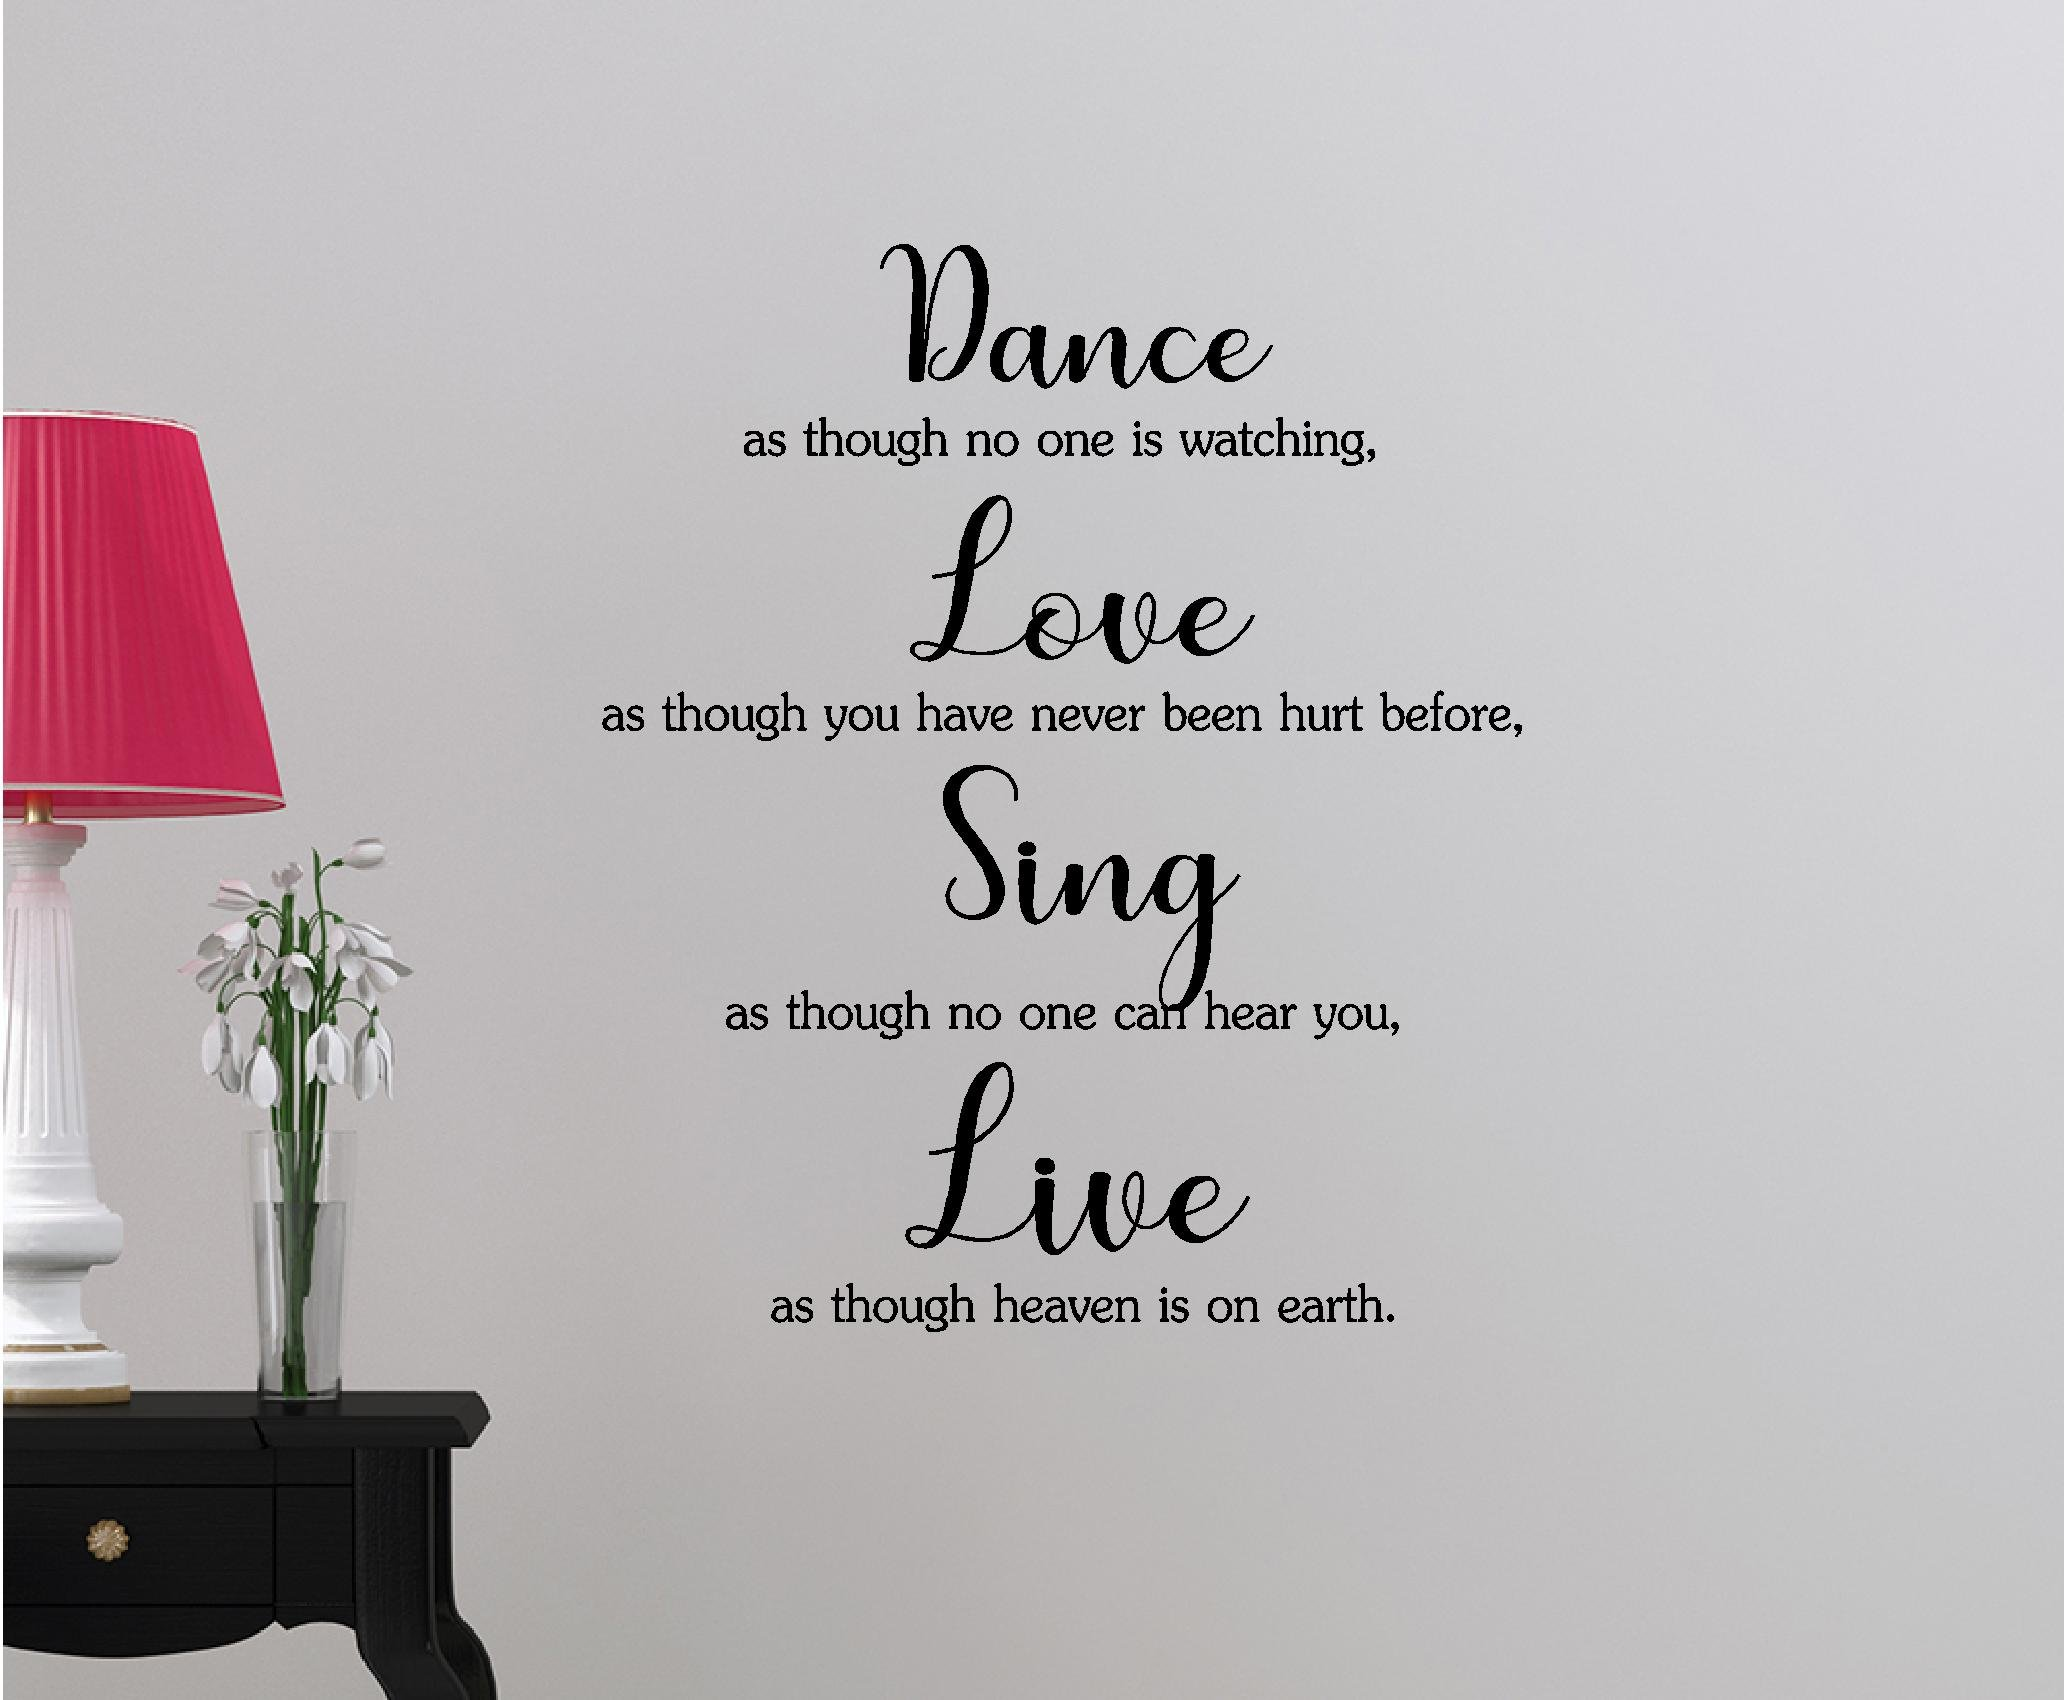 Dance as though no one is watching Love as though you have never been hurt before Sing as though no one can hear cute inspirational family love vinyl quote saying wall art lettering sign room decor